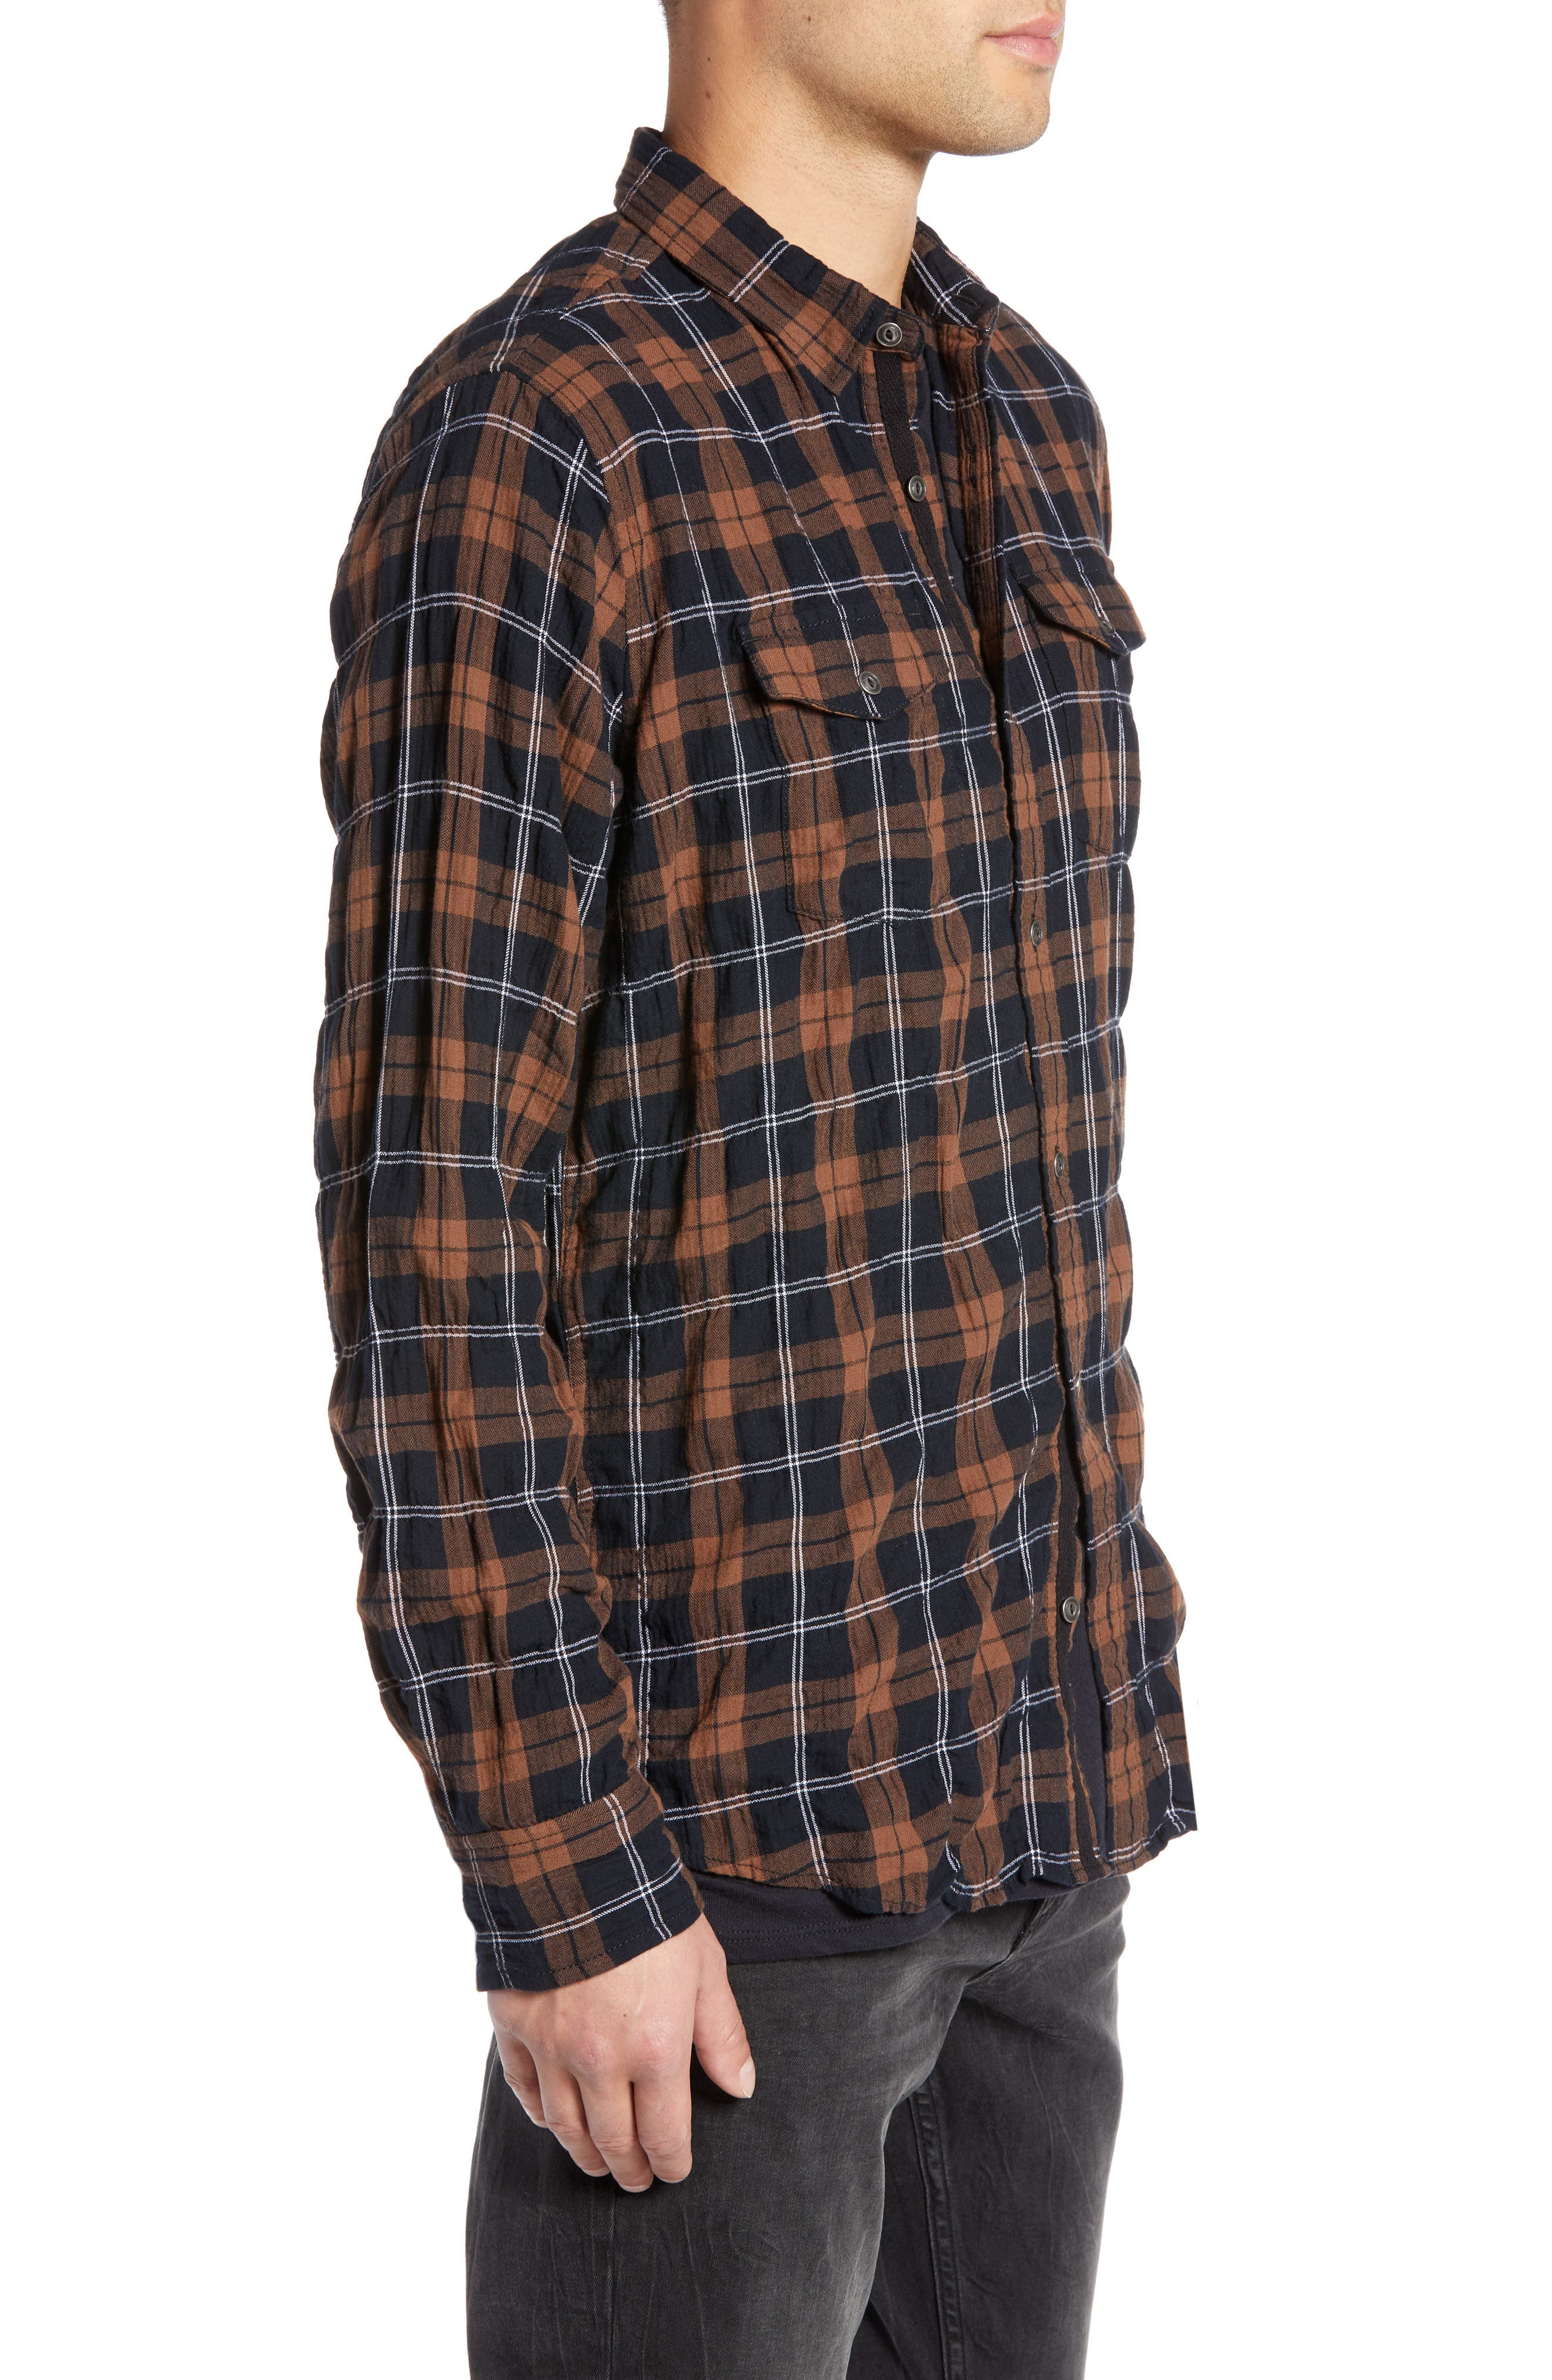 Regular Fit Plaid Sport Shirt,                             Alternate thumbnail 3, color,                             BLACK BROWN SMITH PLAID